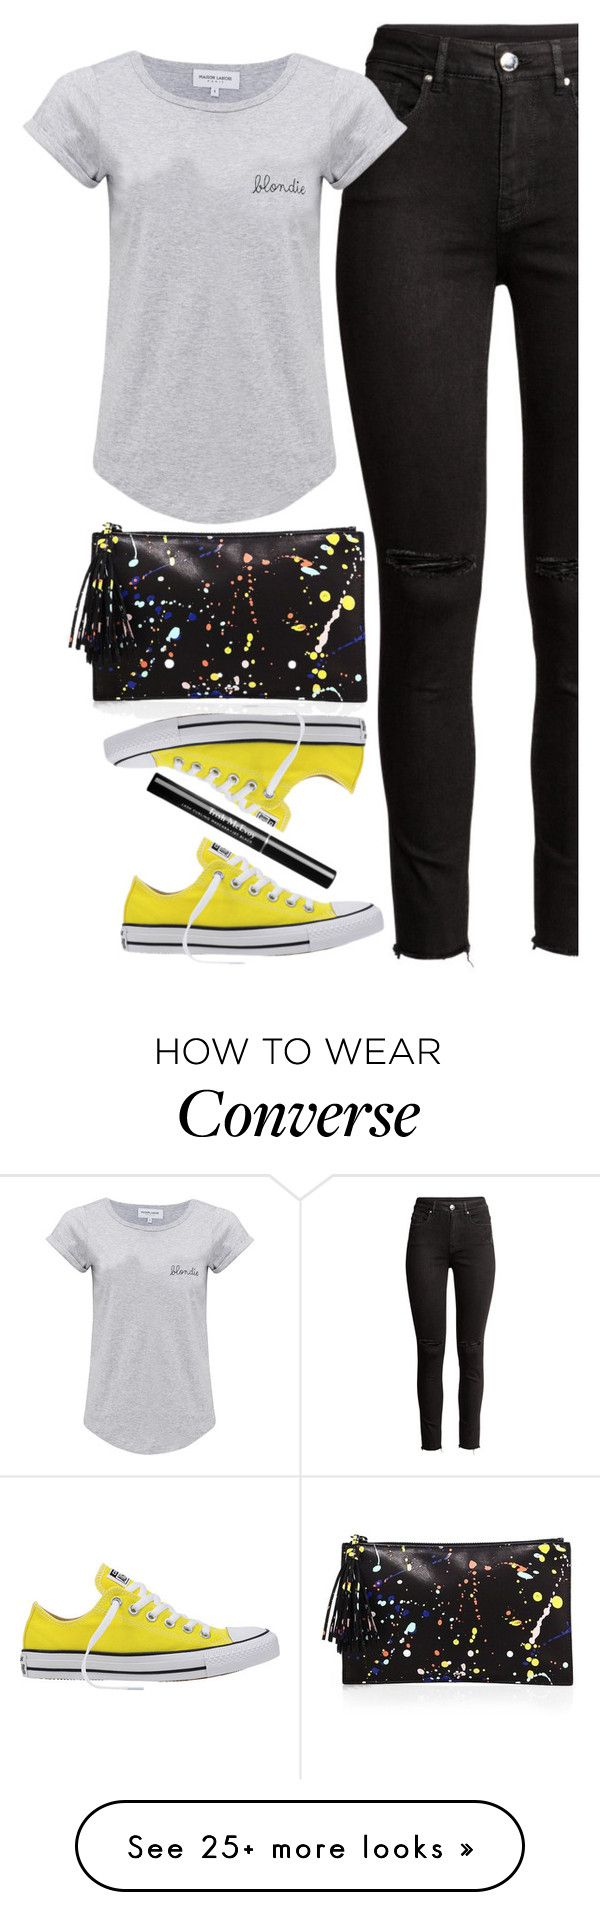 """love story"" by ecem1 on Polyvore featuring Maison Labiche, Loeffler Randall and Converse"